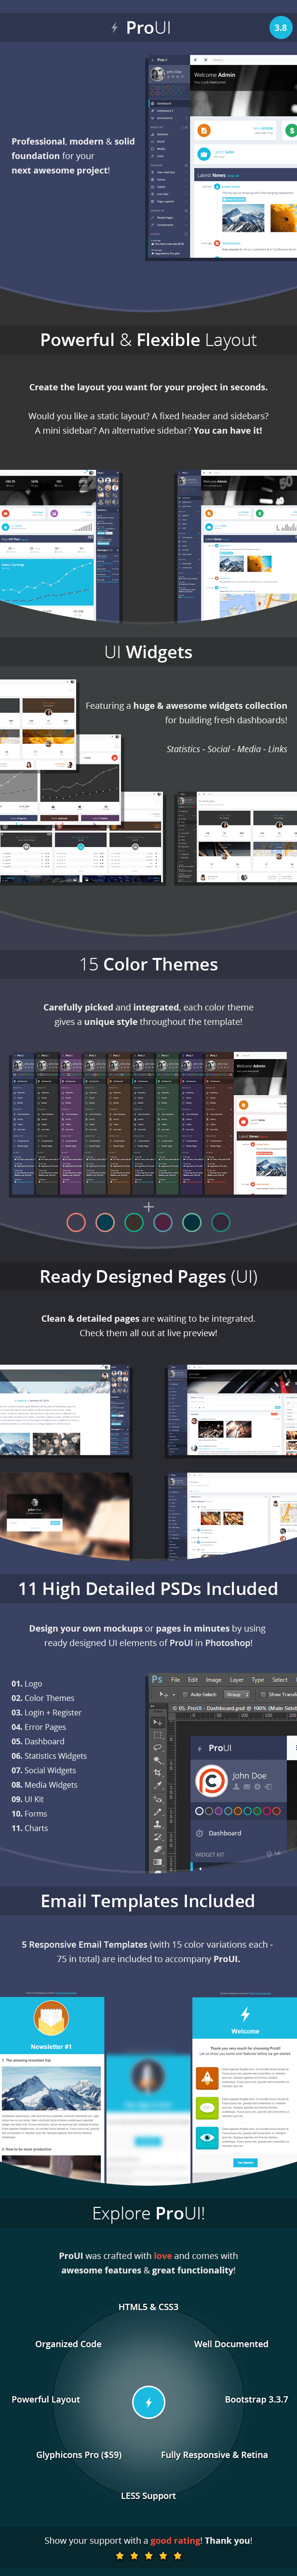 features 3.8c - ProUI - Responsive Bootstrap Admin Template